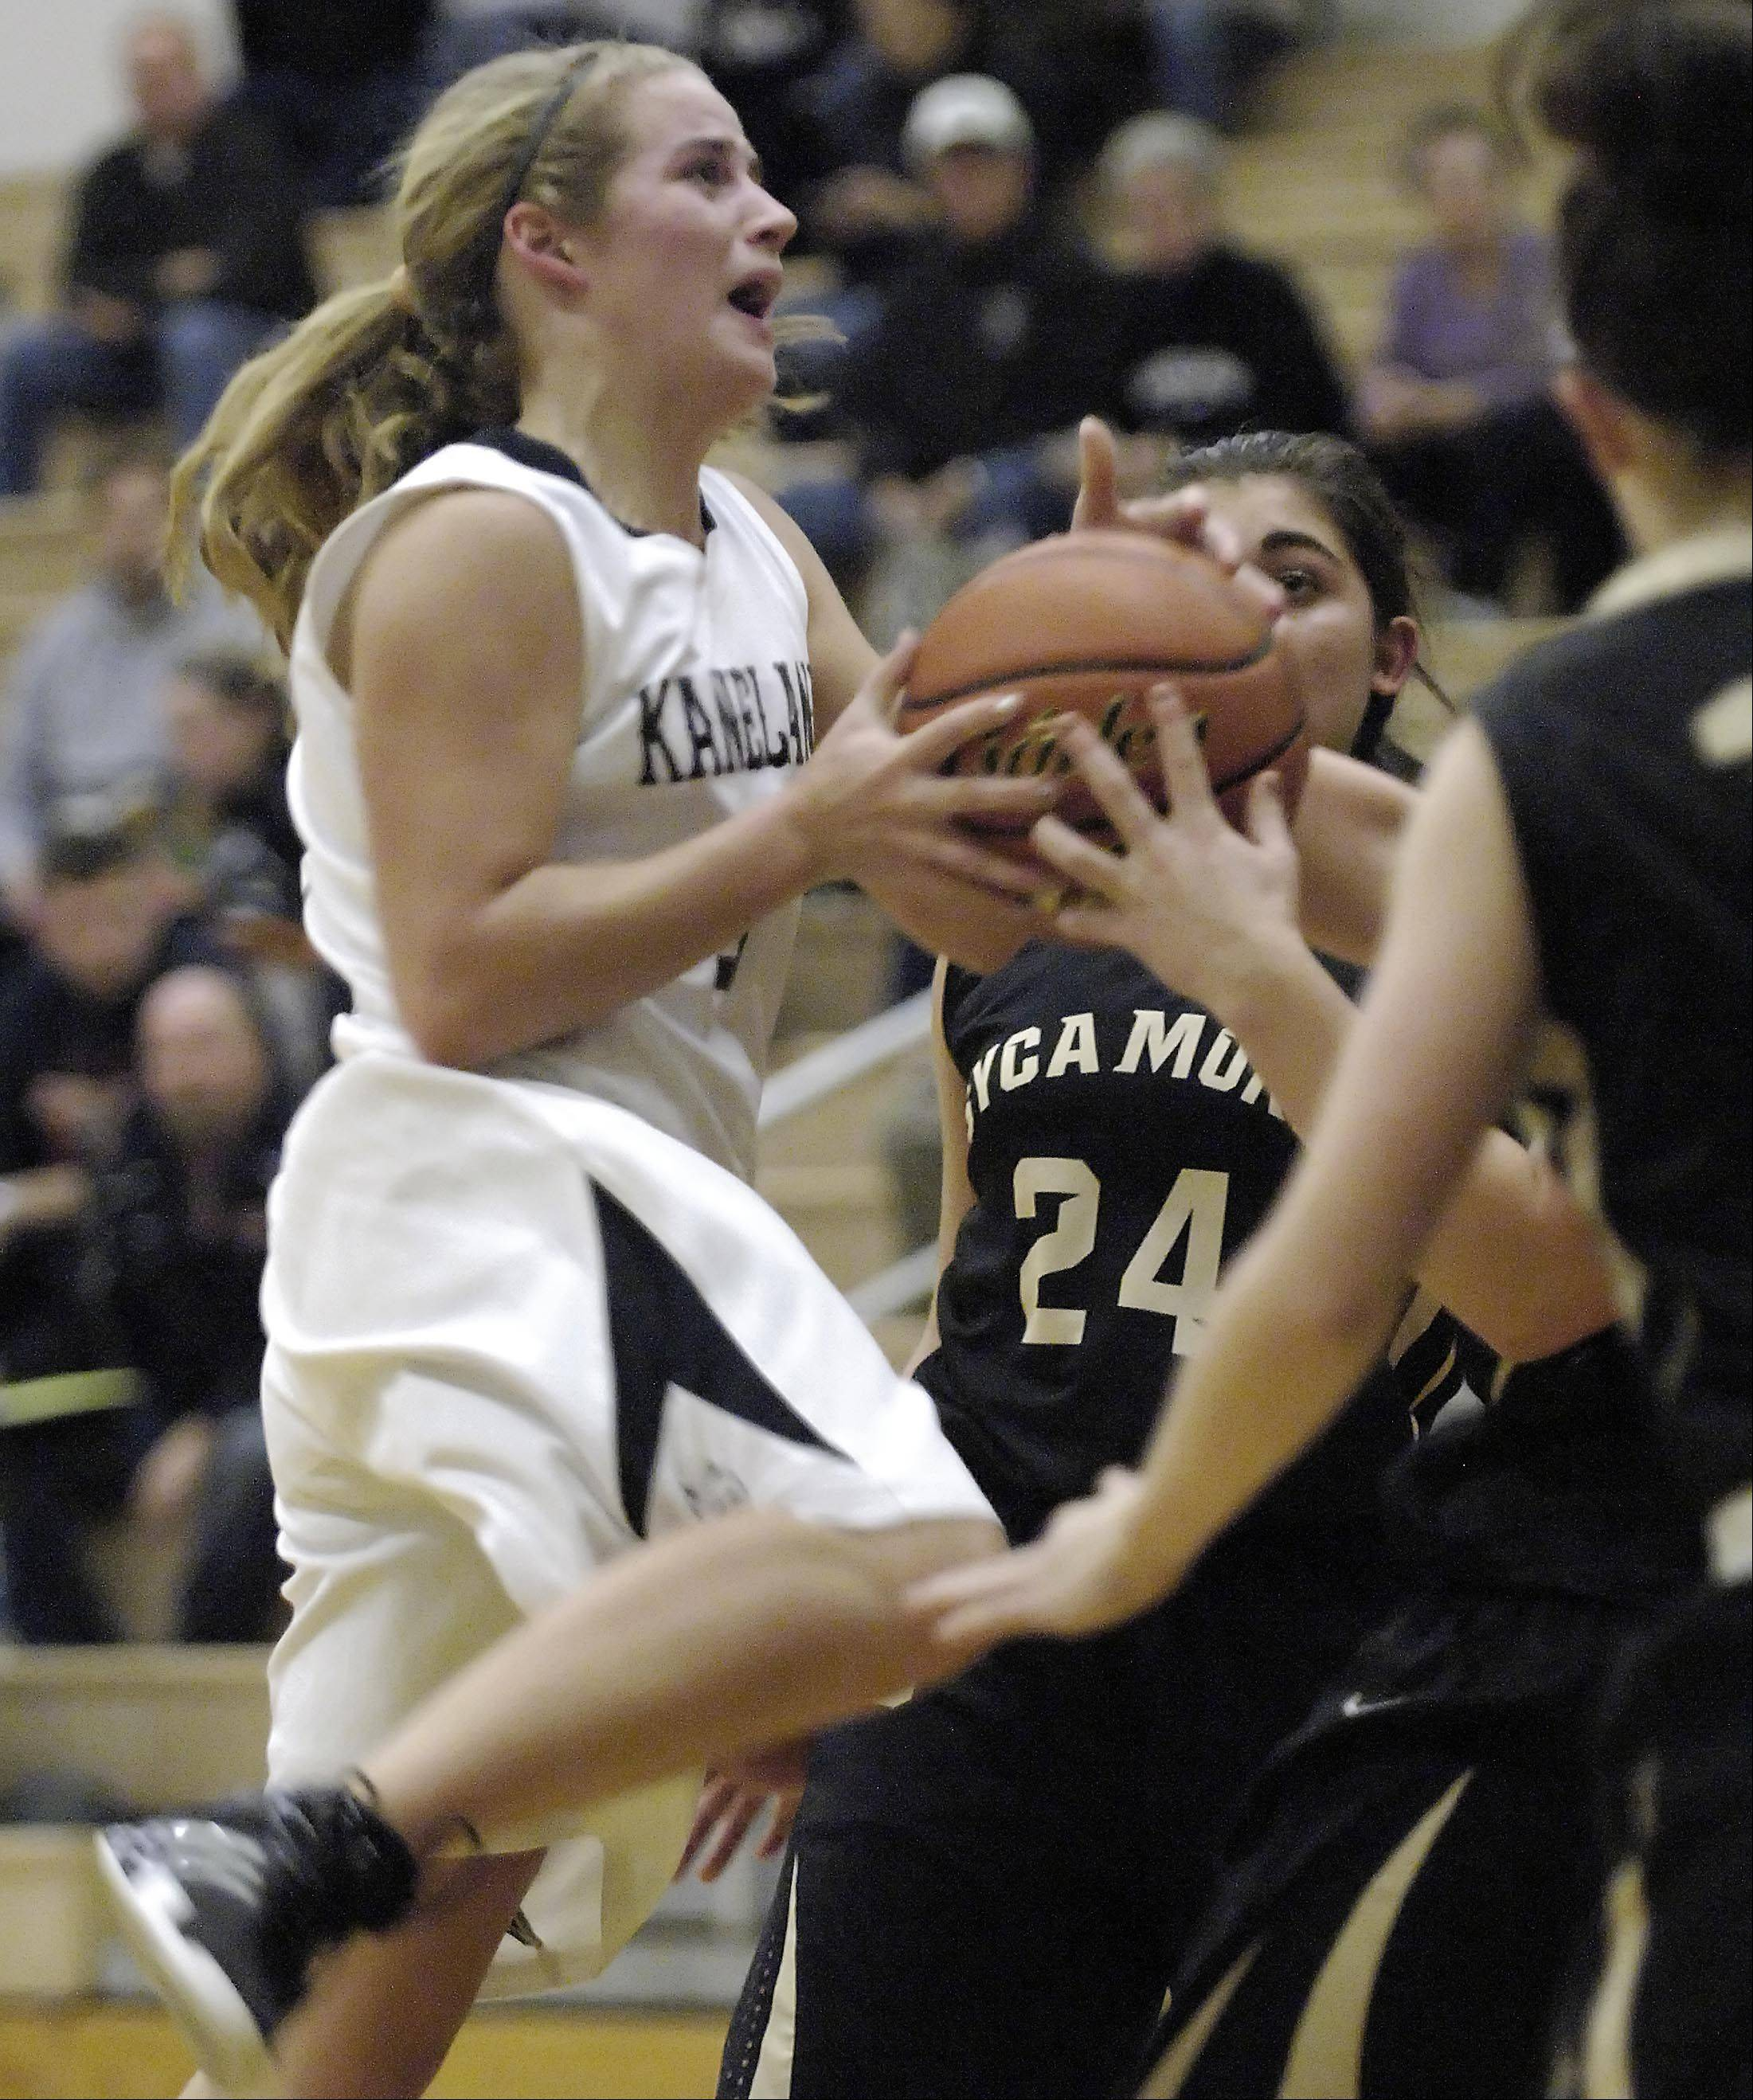 Kaneland's Sarah Grams is fouled as she drives into a group of Sycamore players Thursday in Maple Park.